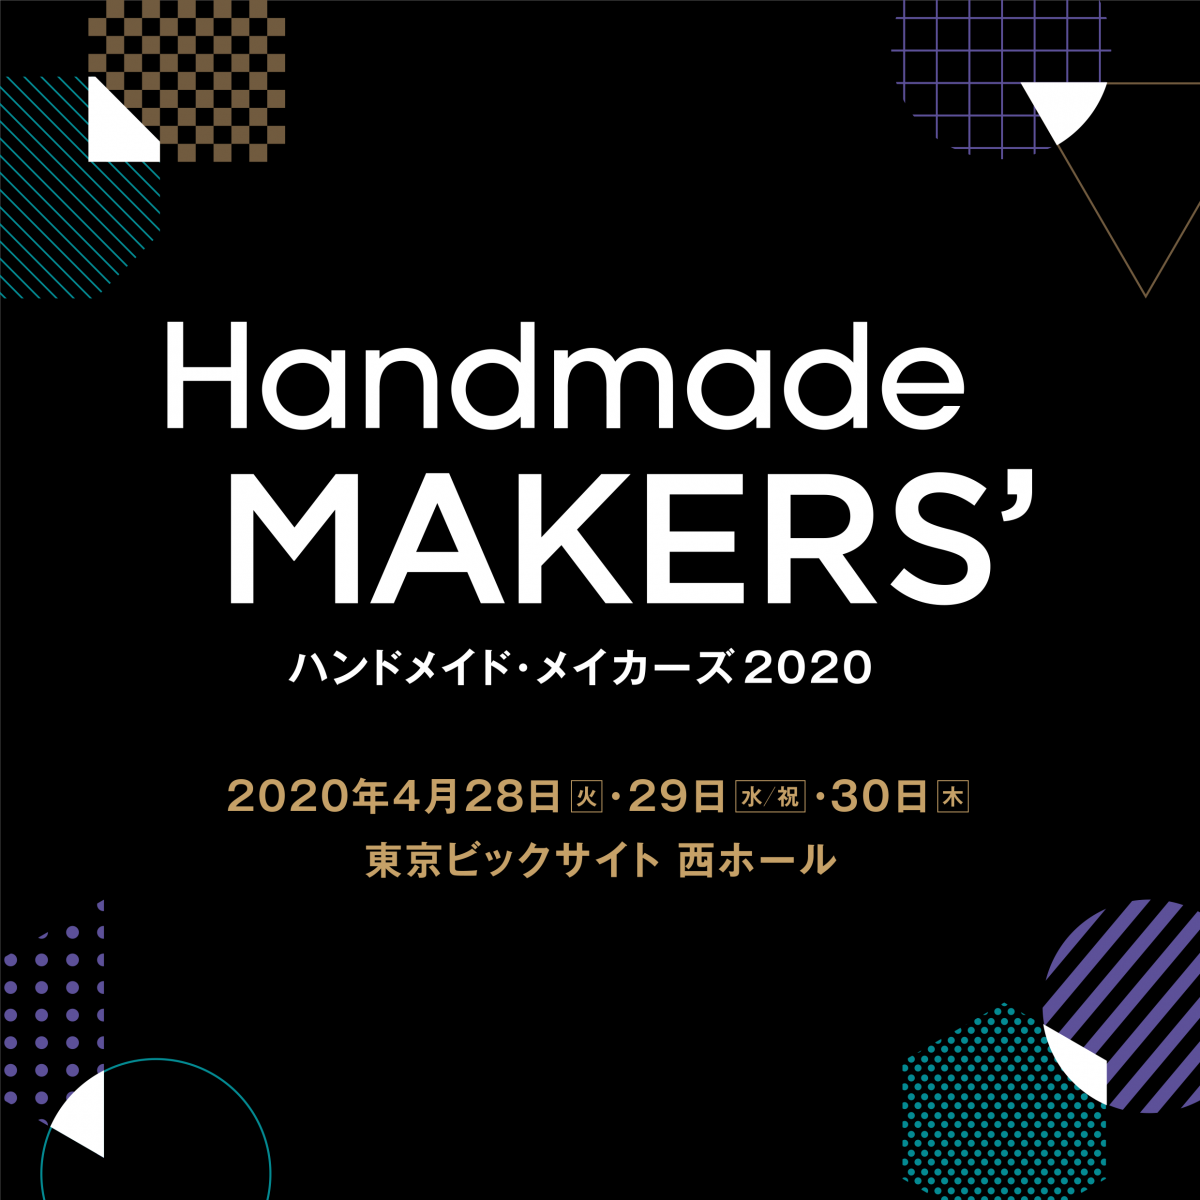 Handmade Makers' 2020に出展が決定!